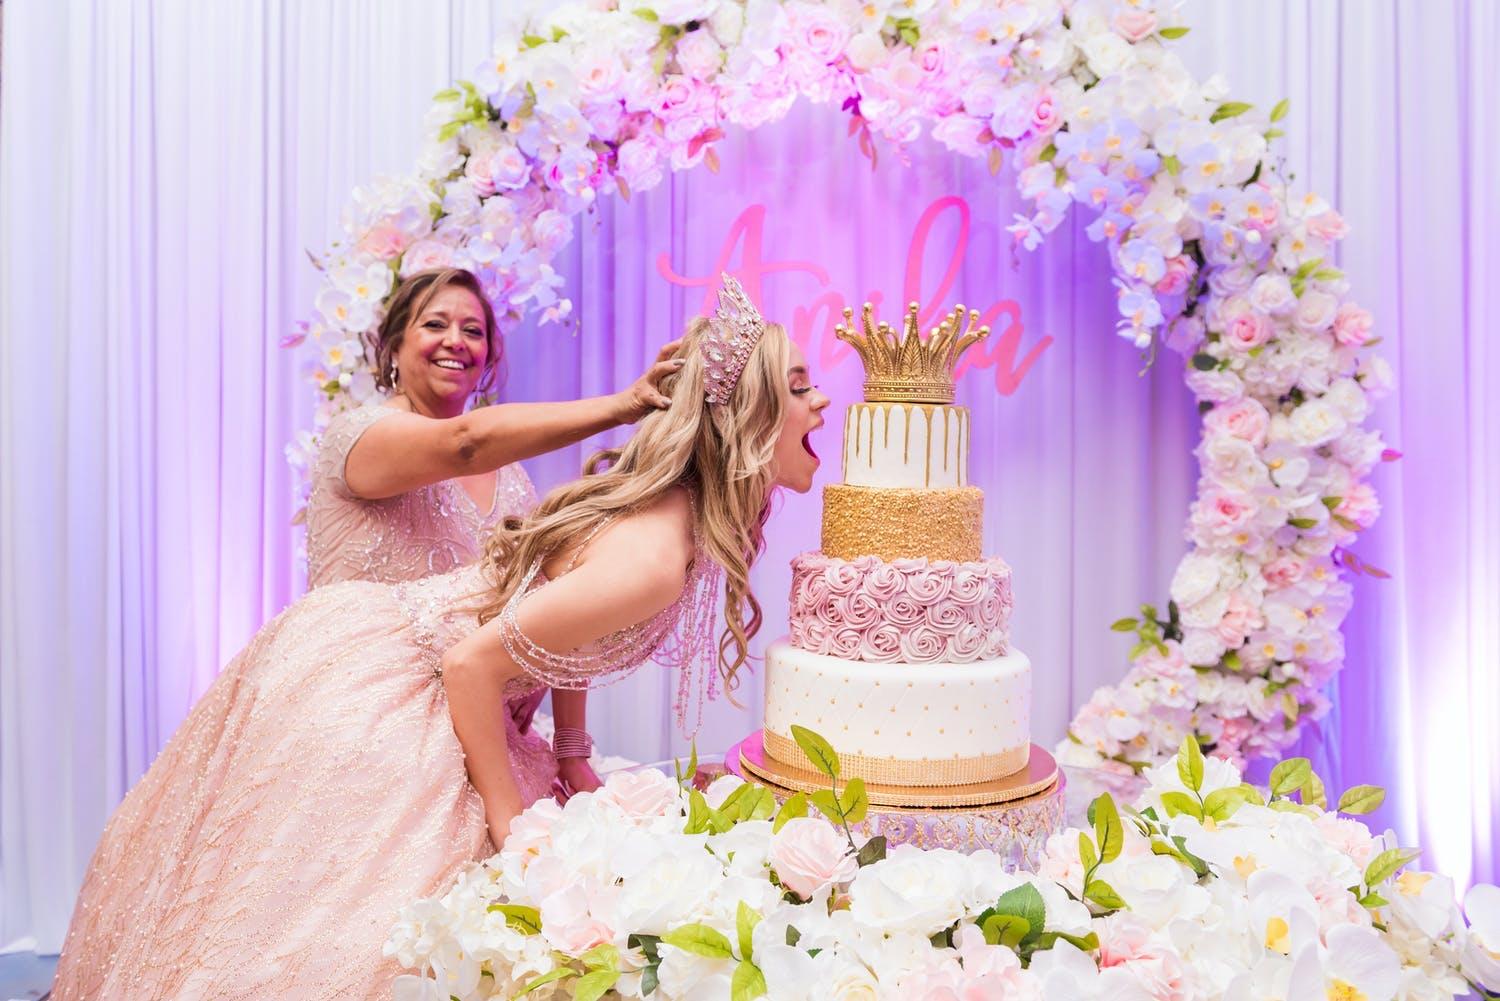 Pink Quinceanera Theme With Mother, Daughter,and Quince Cake | PartySlate